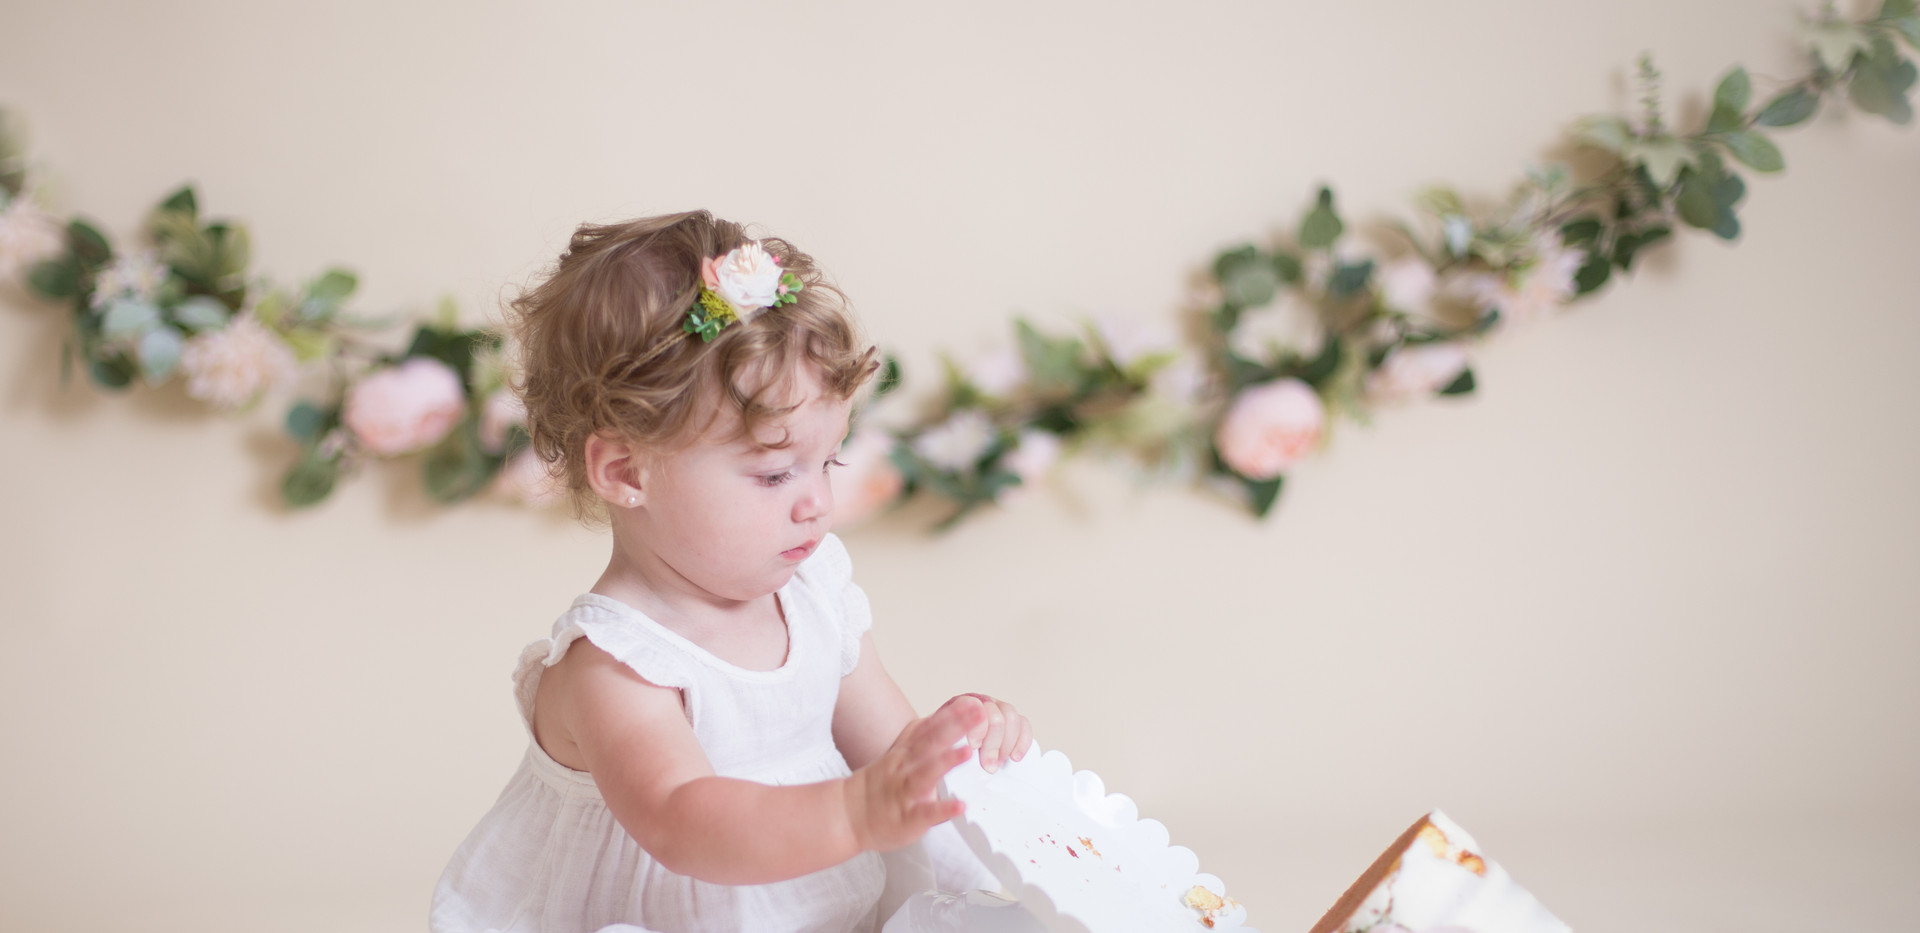 baby pushing cake over, Chattanooga cake smash photo session